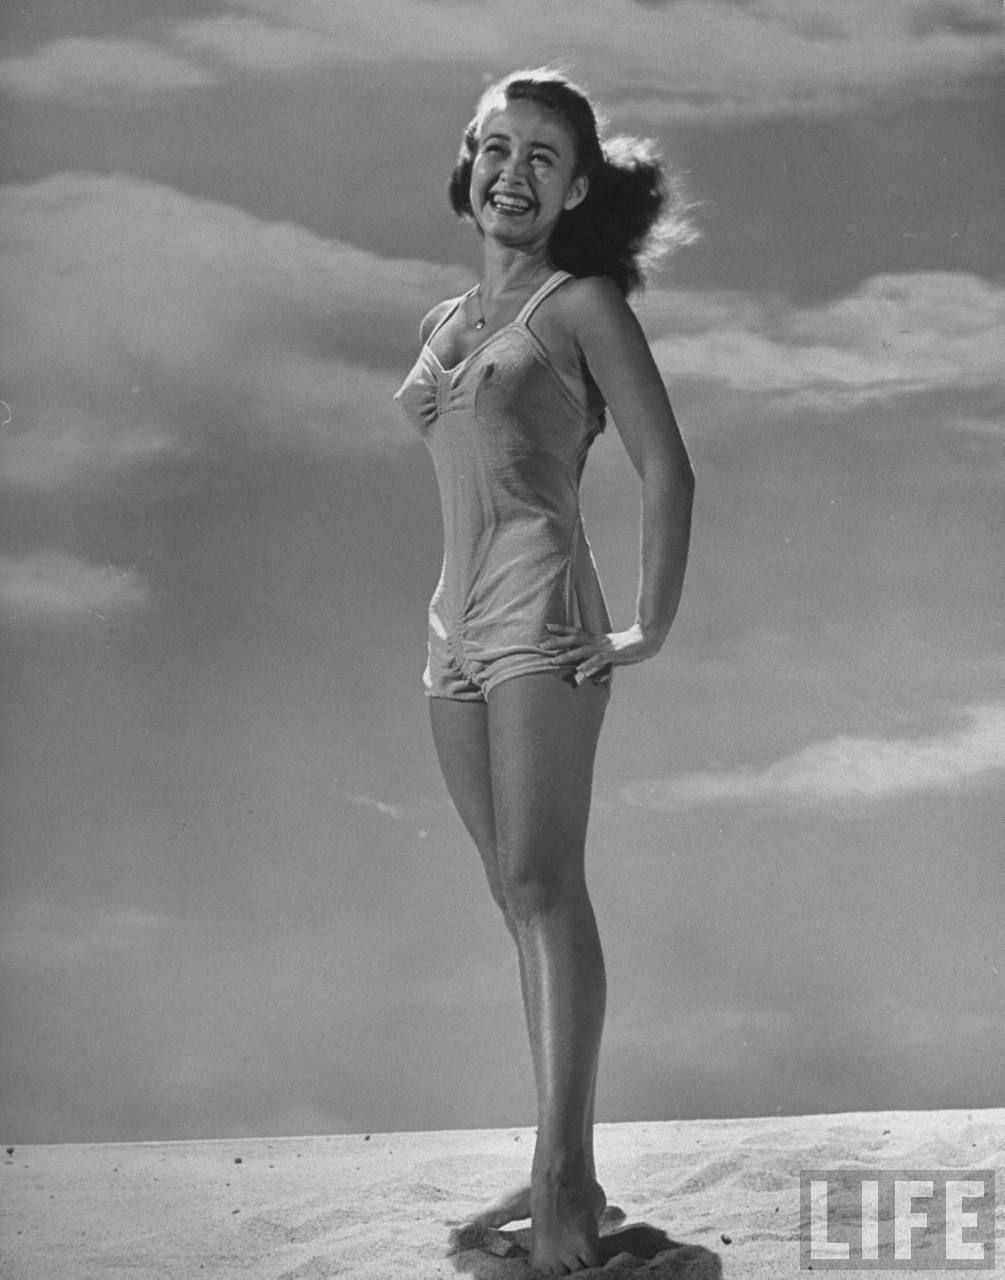 Forum on this topic: Yeidy Bosques, jane-powell/